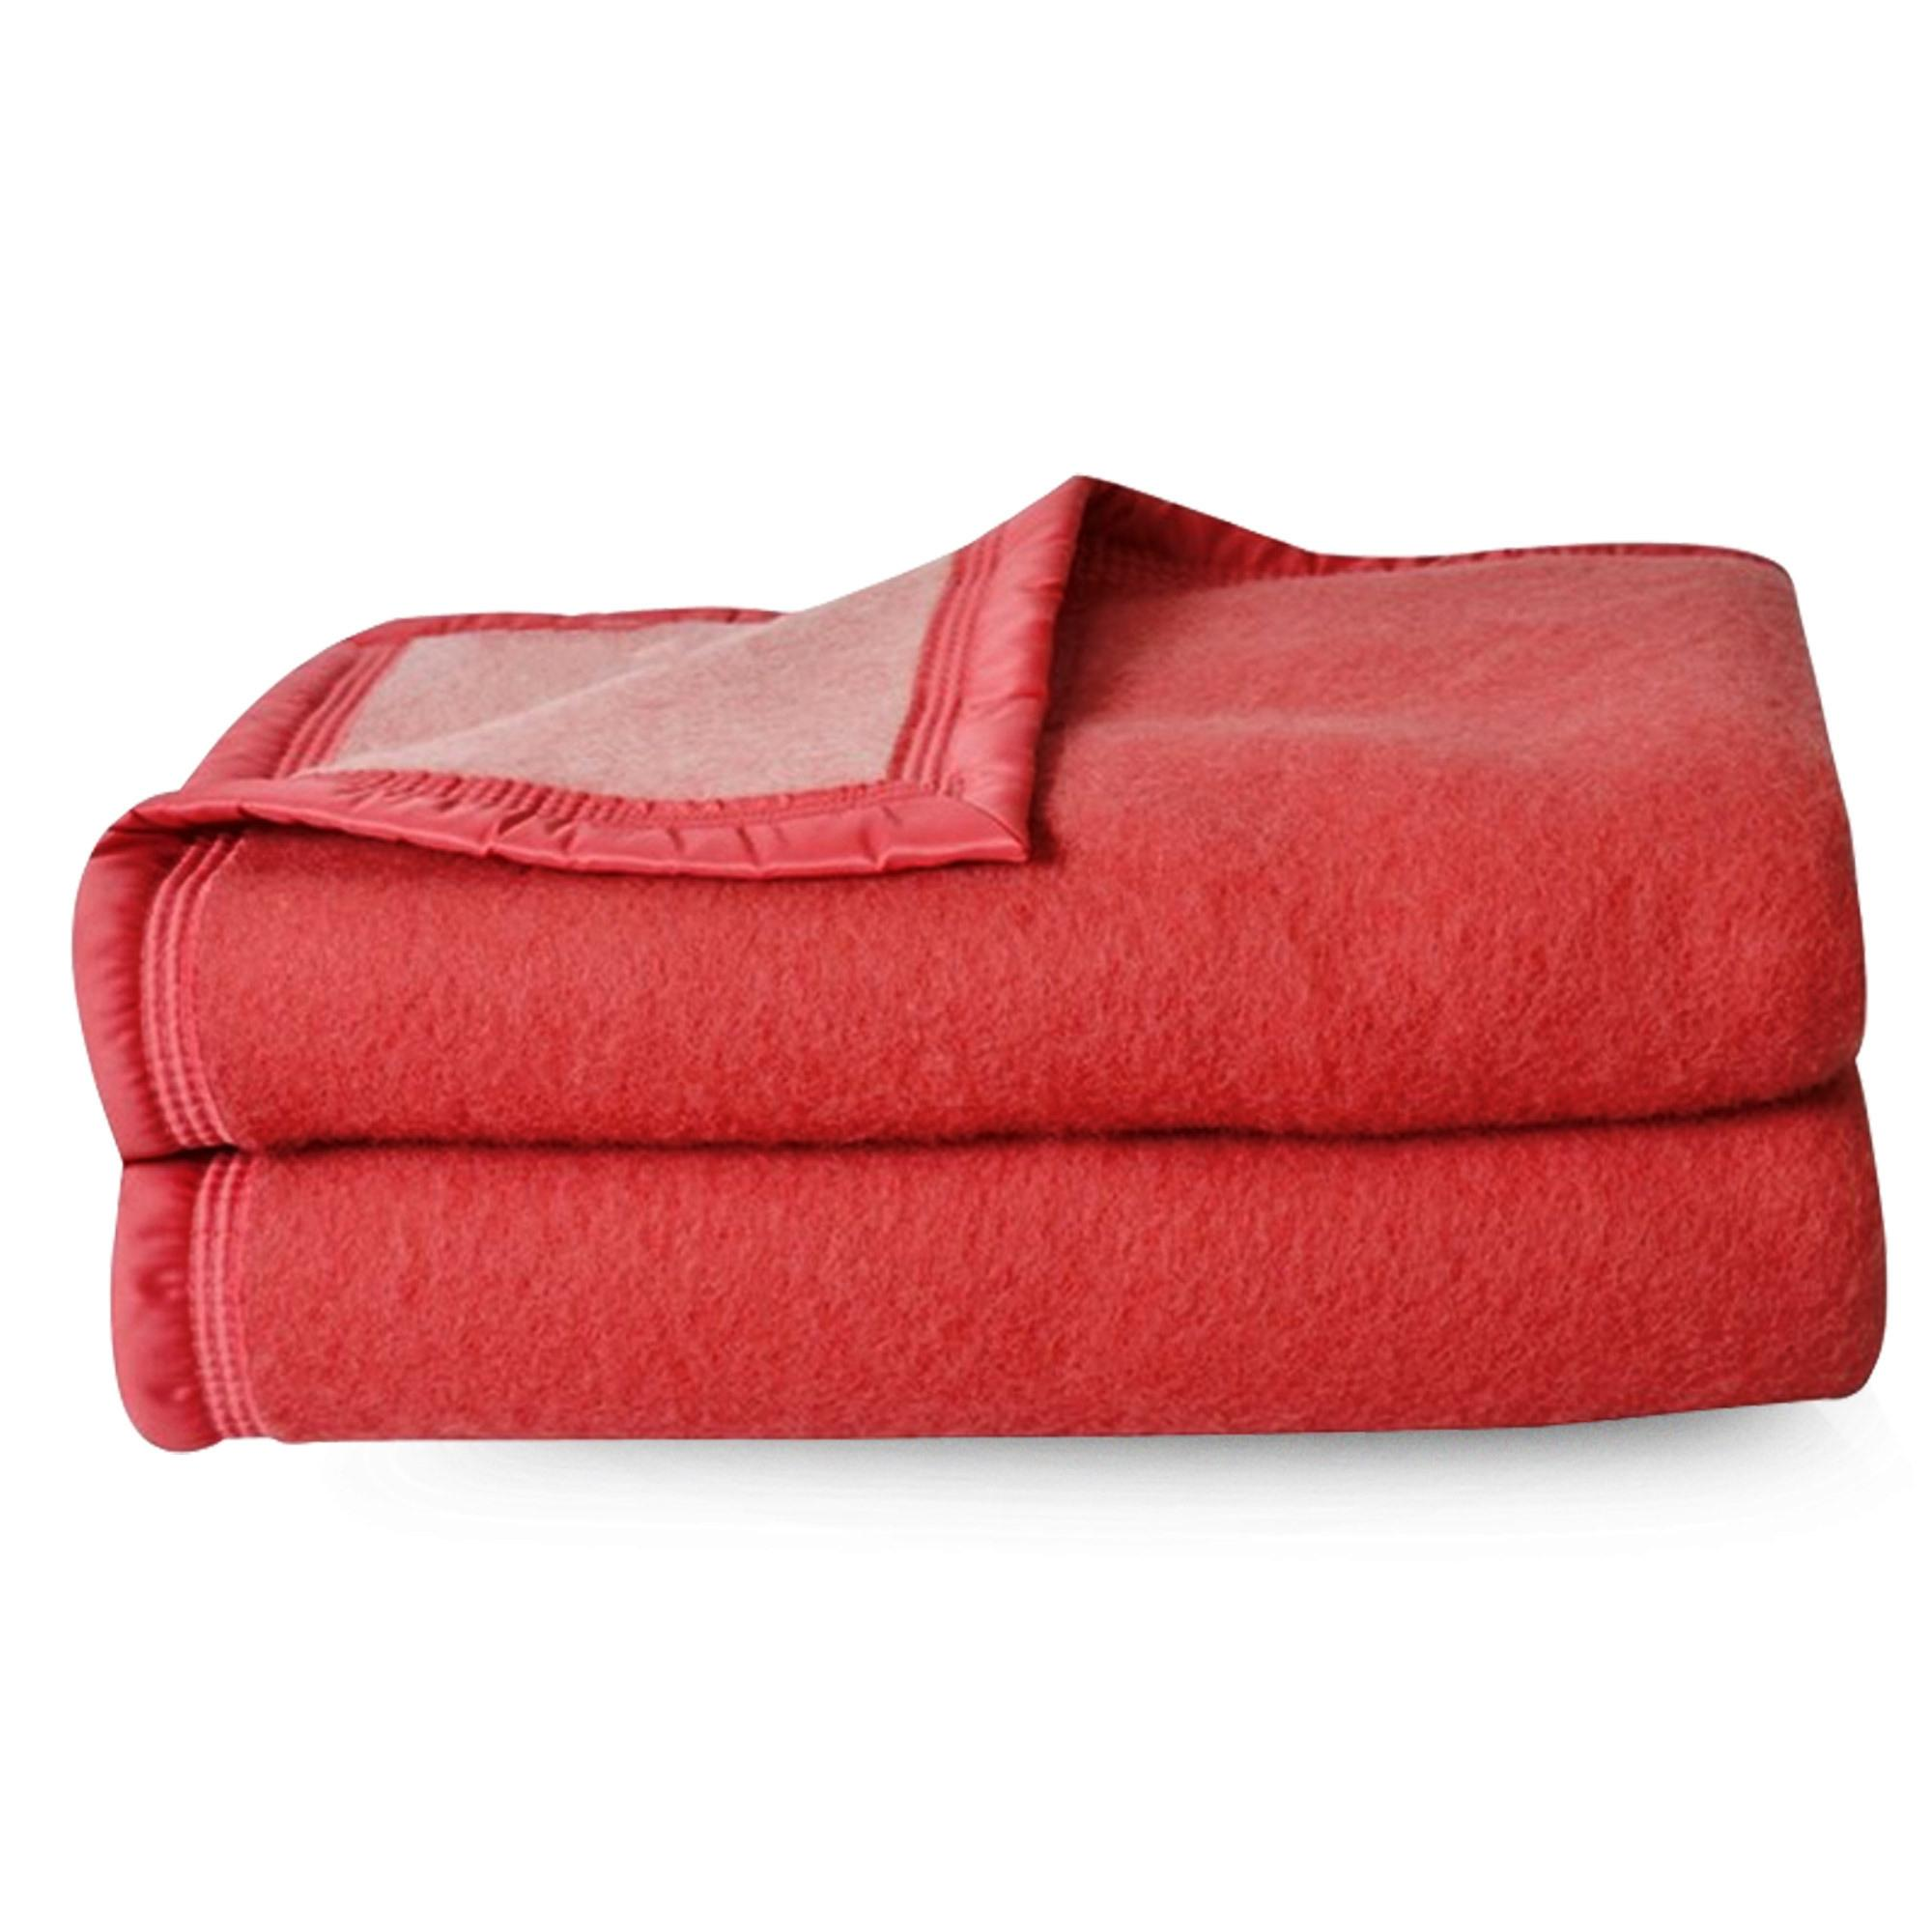 couverture pure laine vierge woolmark 500g m volta 220x240 cm rouge bois de rose linnea. Black Bedroom Furniture Sets. Home Design Ideas